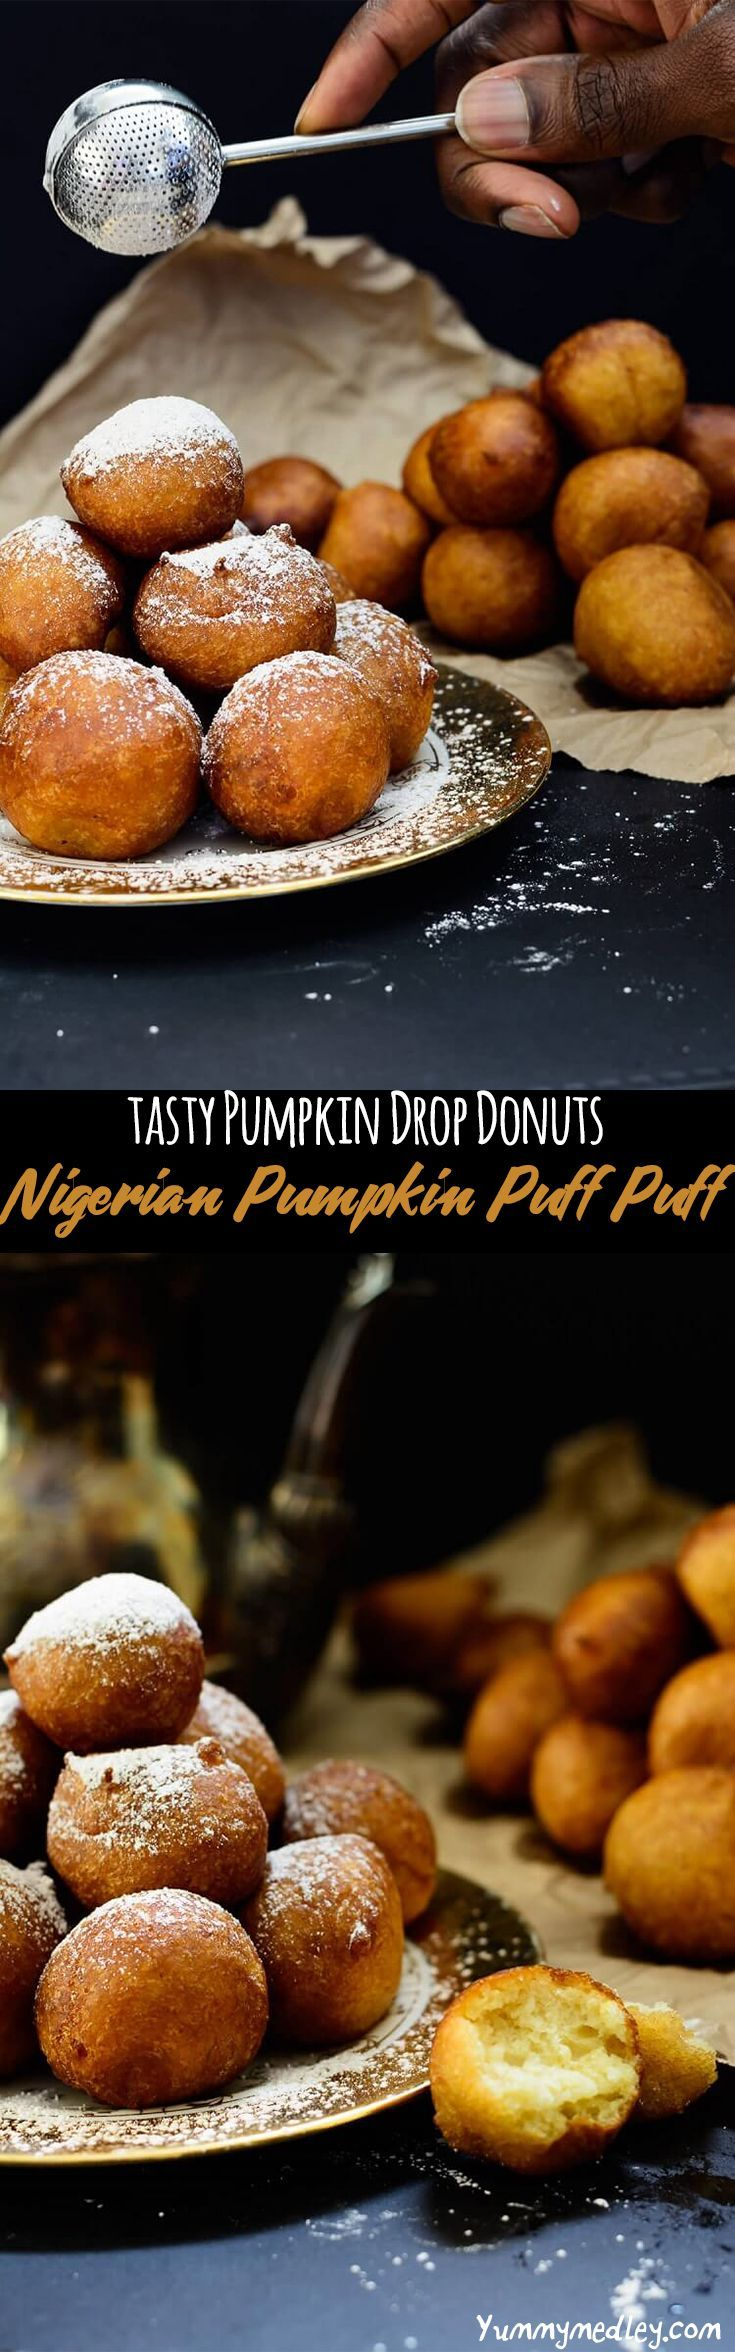 If you think you love puff puff or even donuts, get ready for a huge upgrade with these tasty and addictive pumpkin drop donuts /puff puffs!